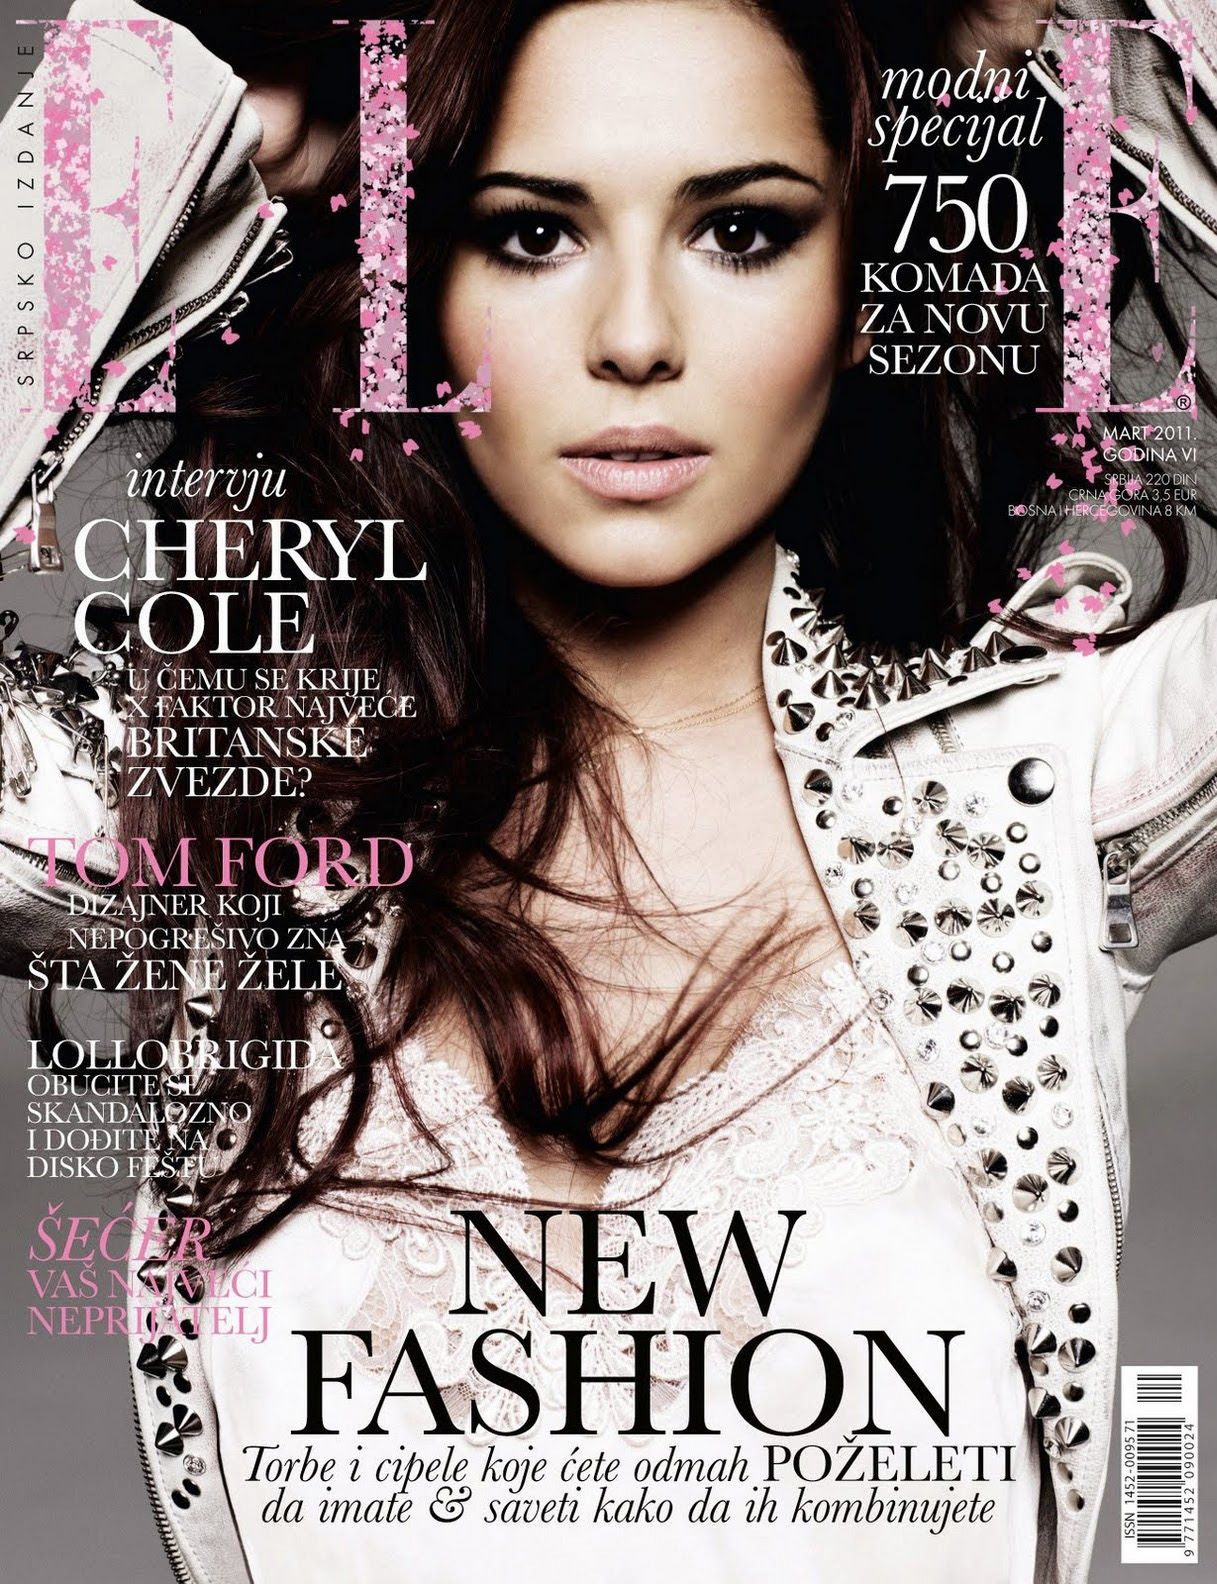 Cheryl Cole For Elle Serbia March 2011 Art8amby 39 S Blog